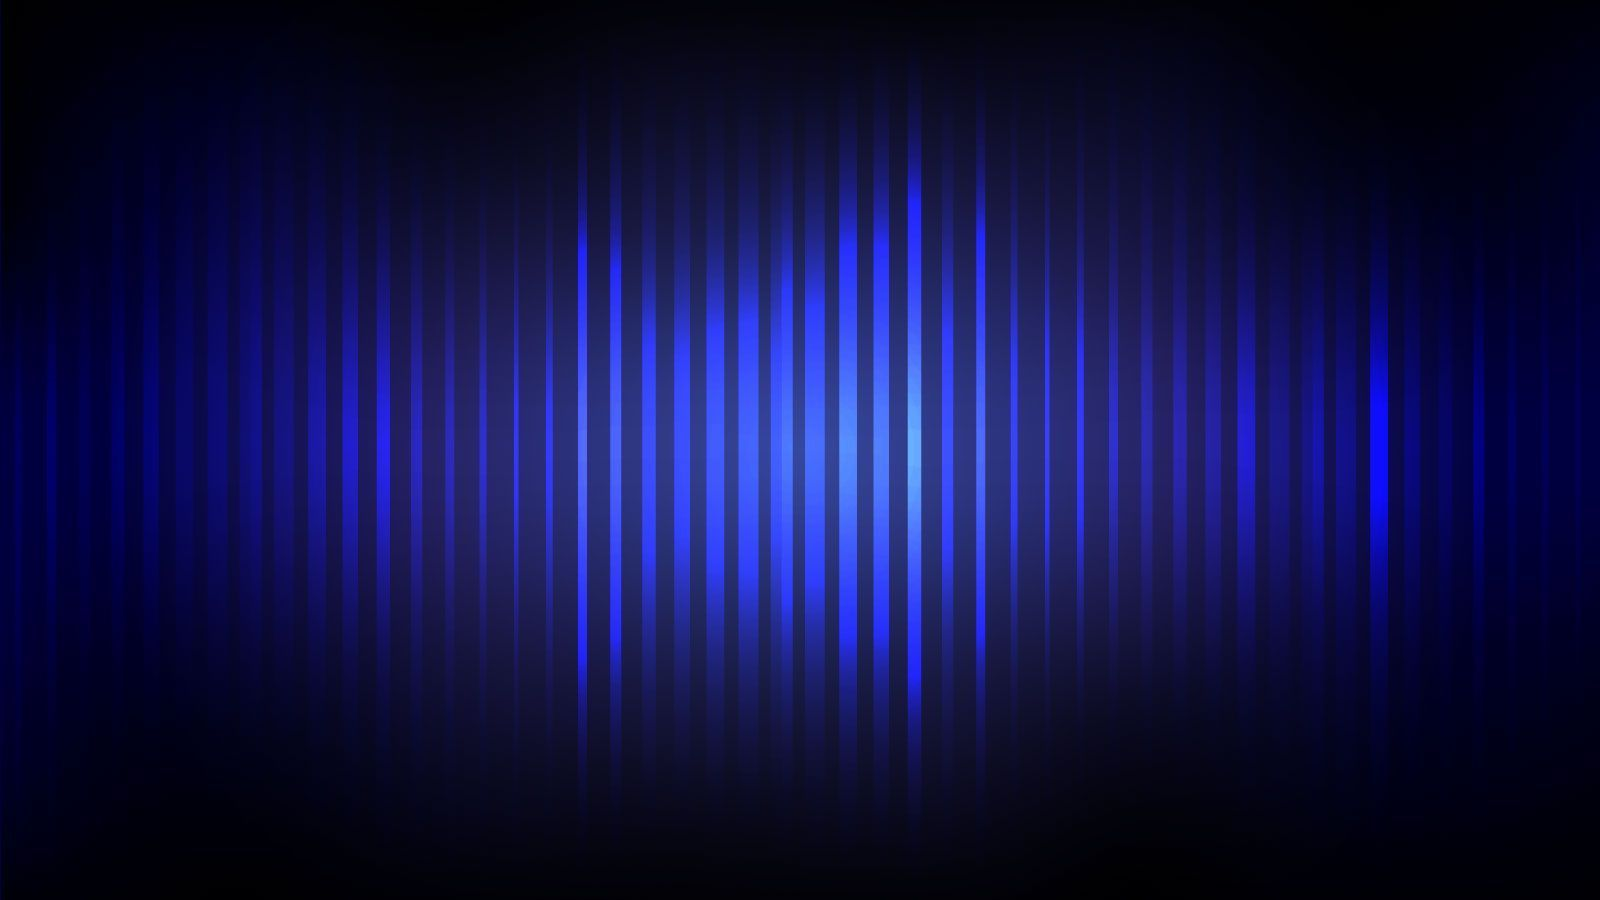 music soundwave wallpaper wwwpixsharkcom images